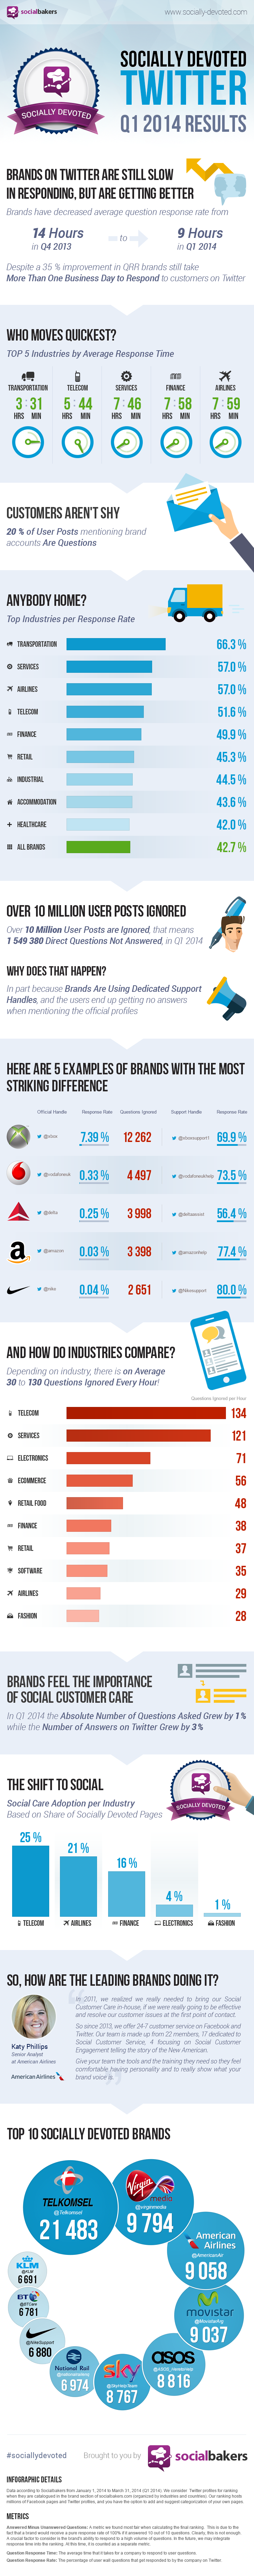 Brands On #Twitter Are Still Slow In Responding, But Are Getting Better - #infographic #socialmedia